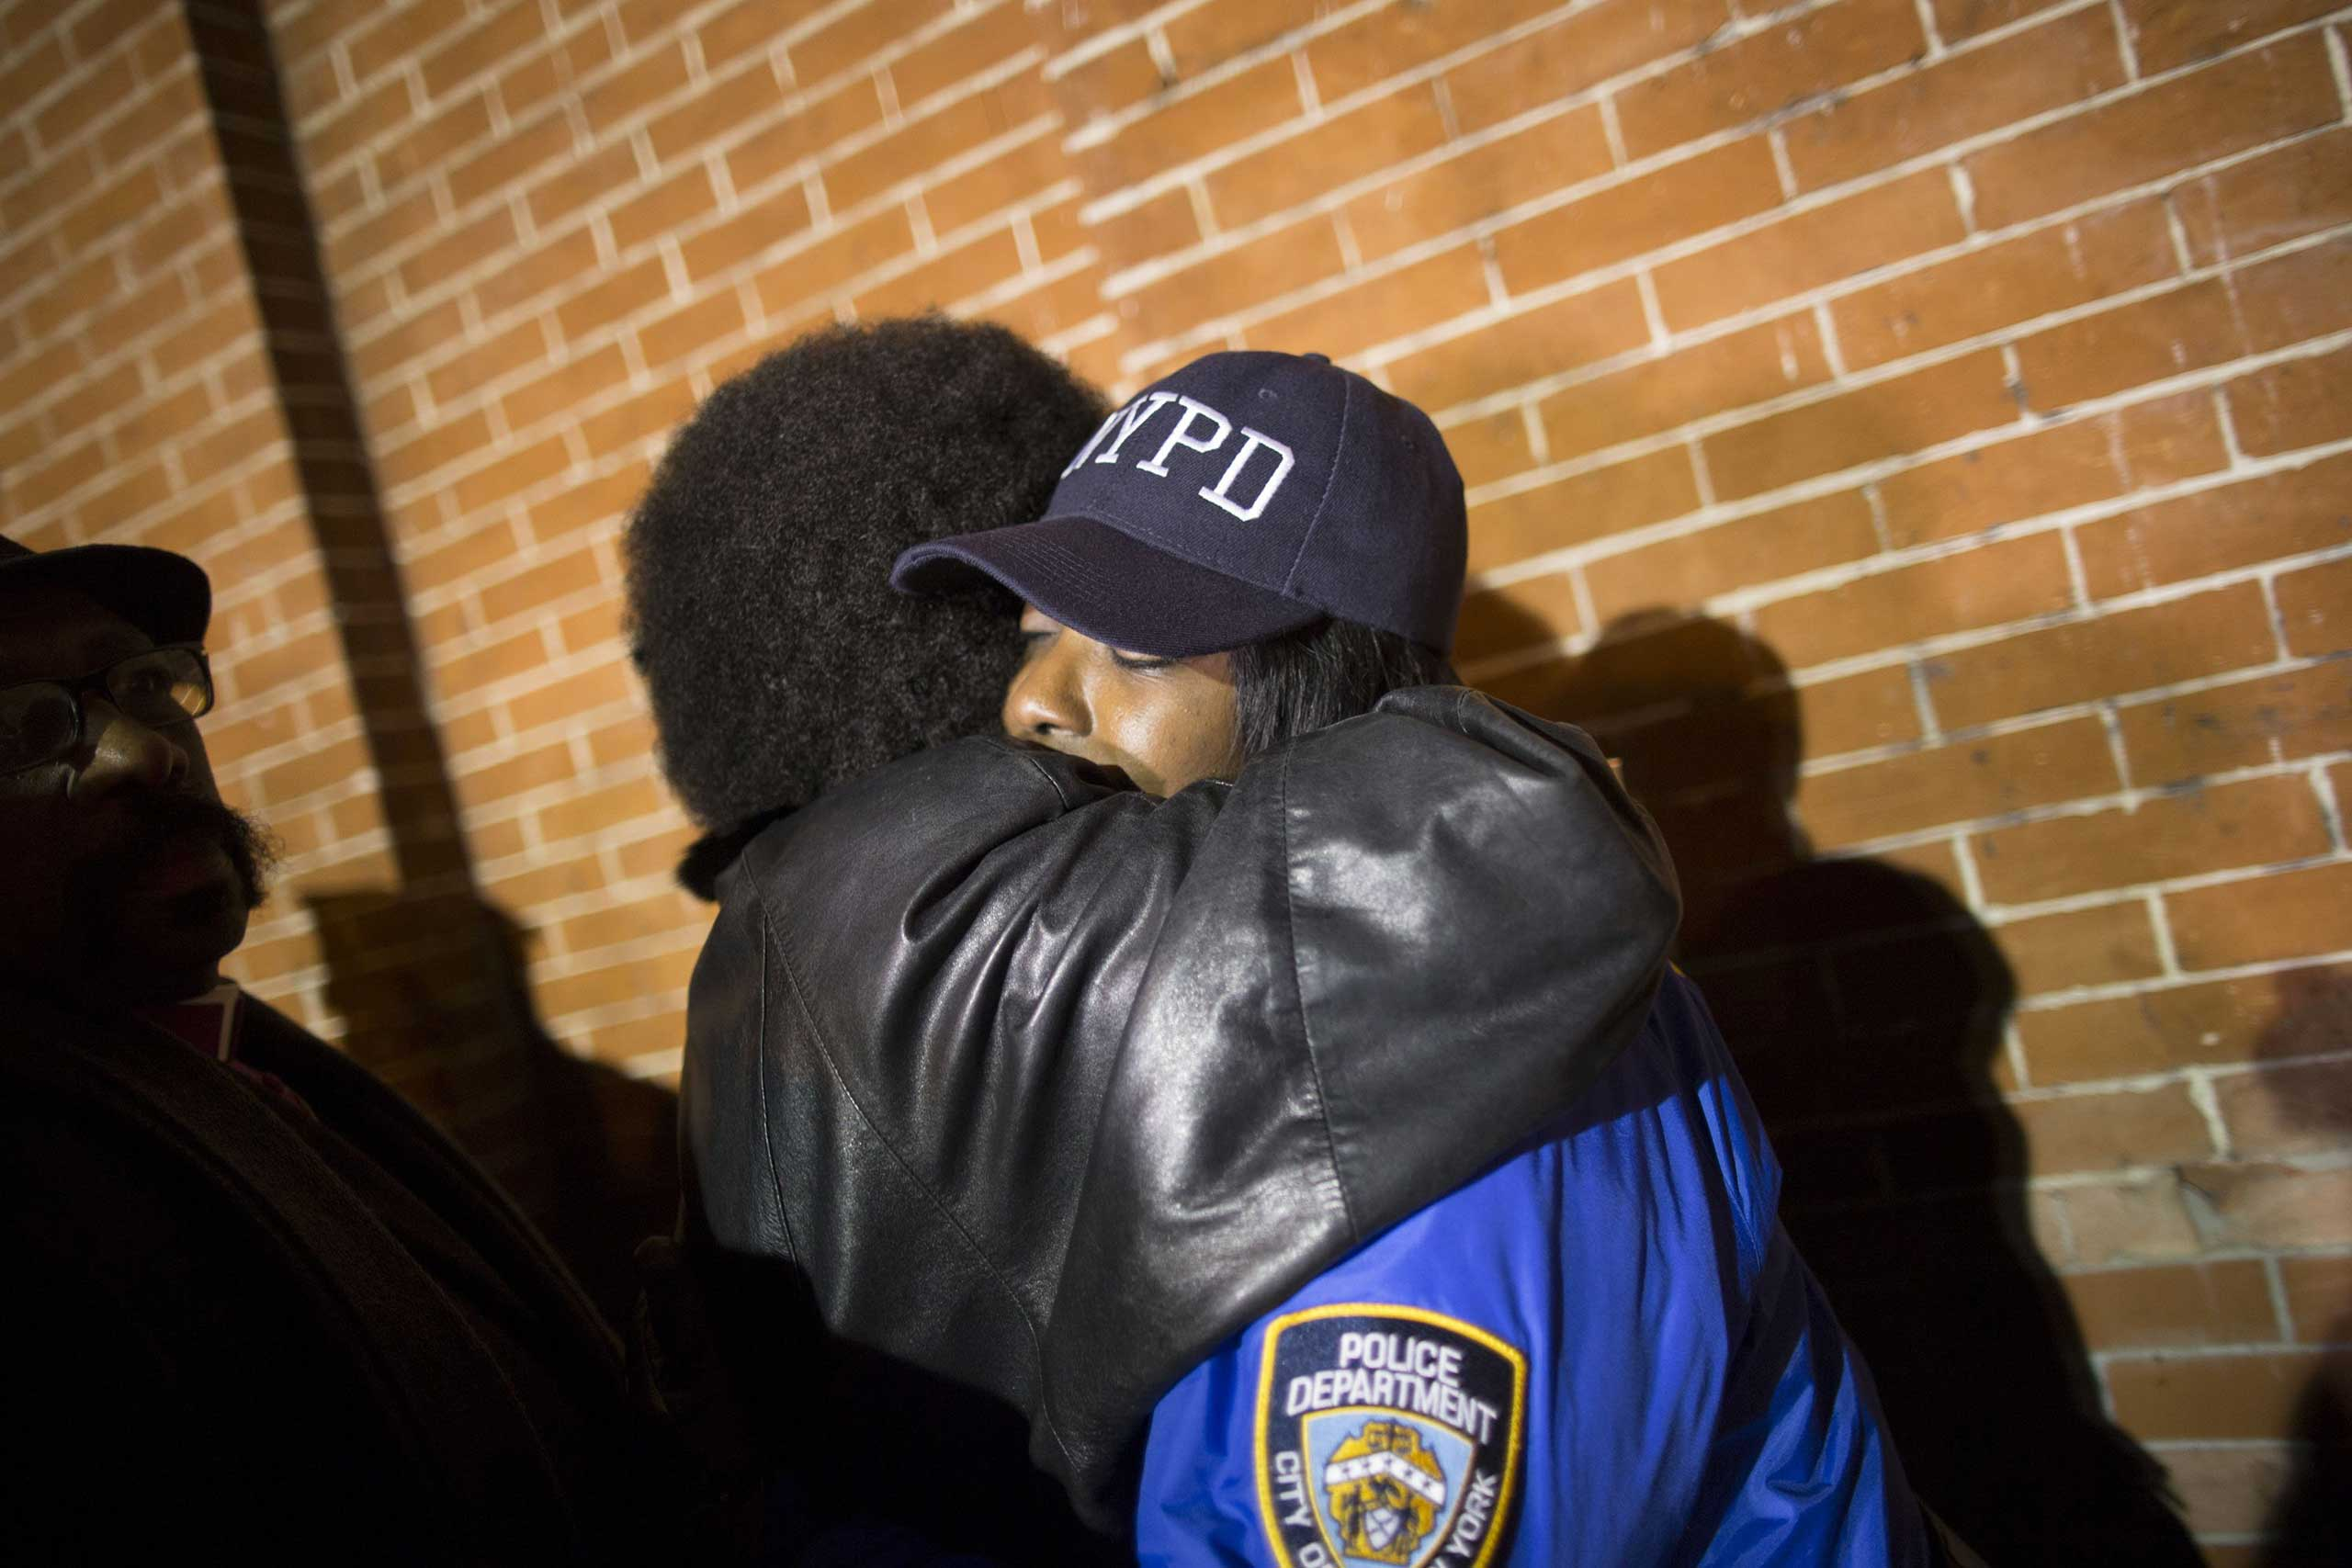 Mourners take part in a prayer vigil at the site where two police officers were fatally shot in the Brooklyn borough of New York City, Dec. 21, 2014.